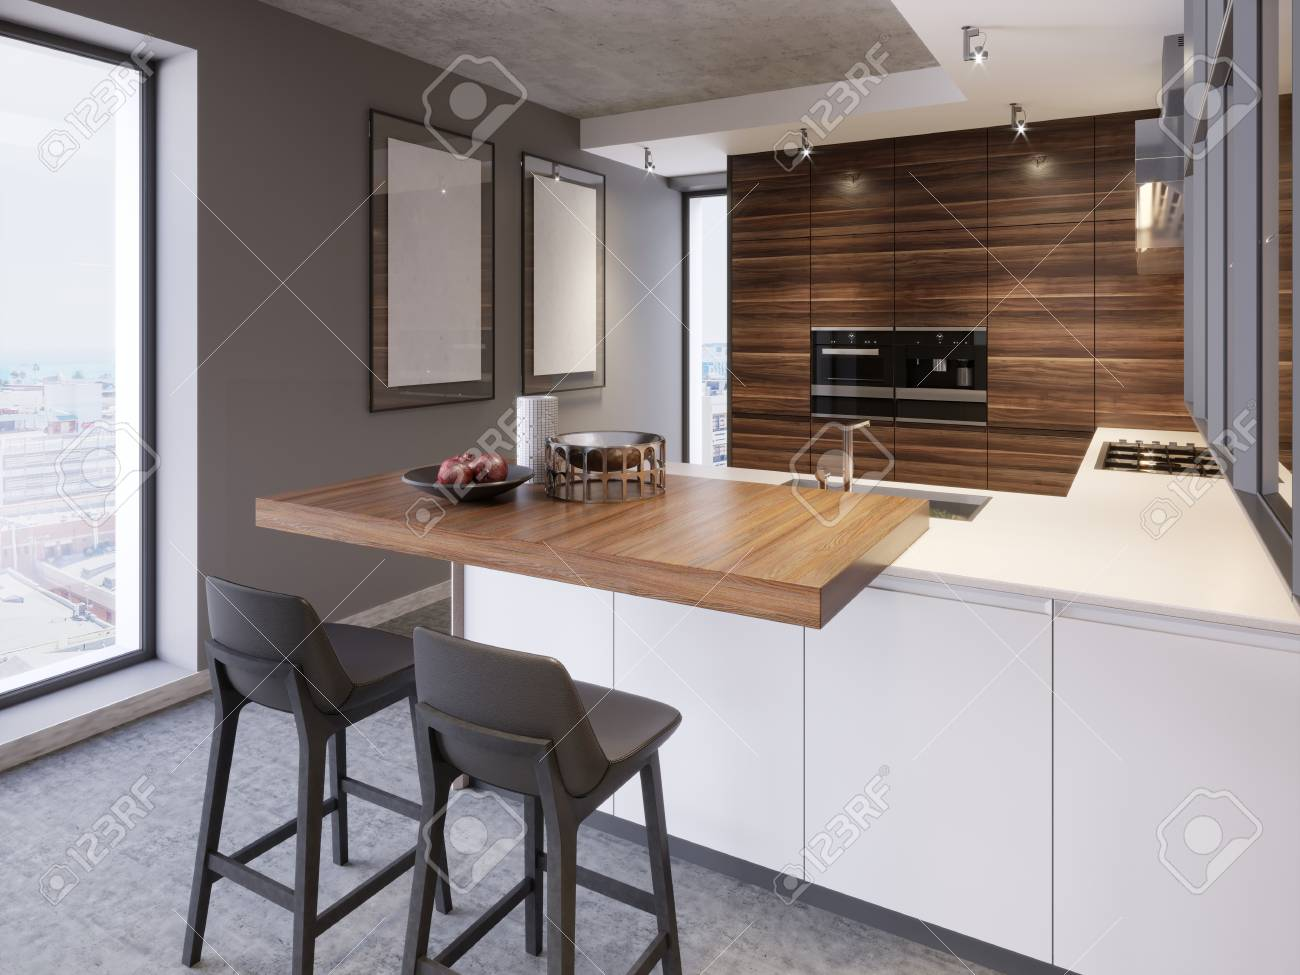 A kitchen with a kitchen island with two chairs in a modern kitchen,..